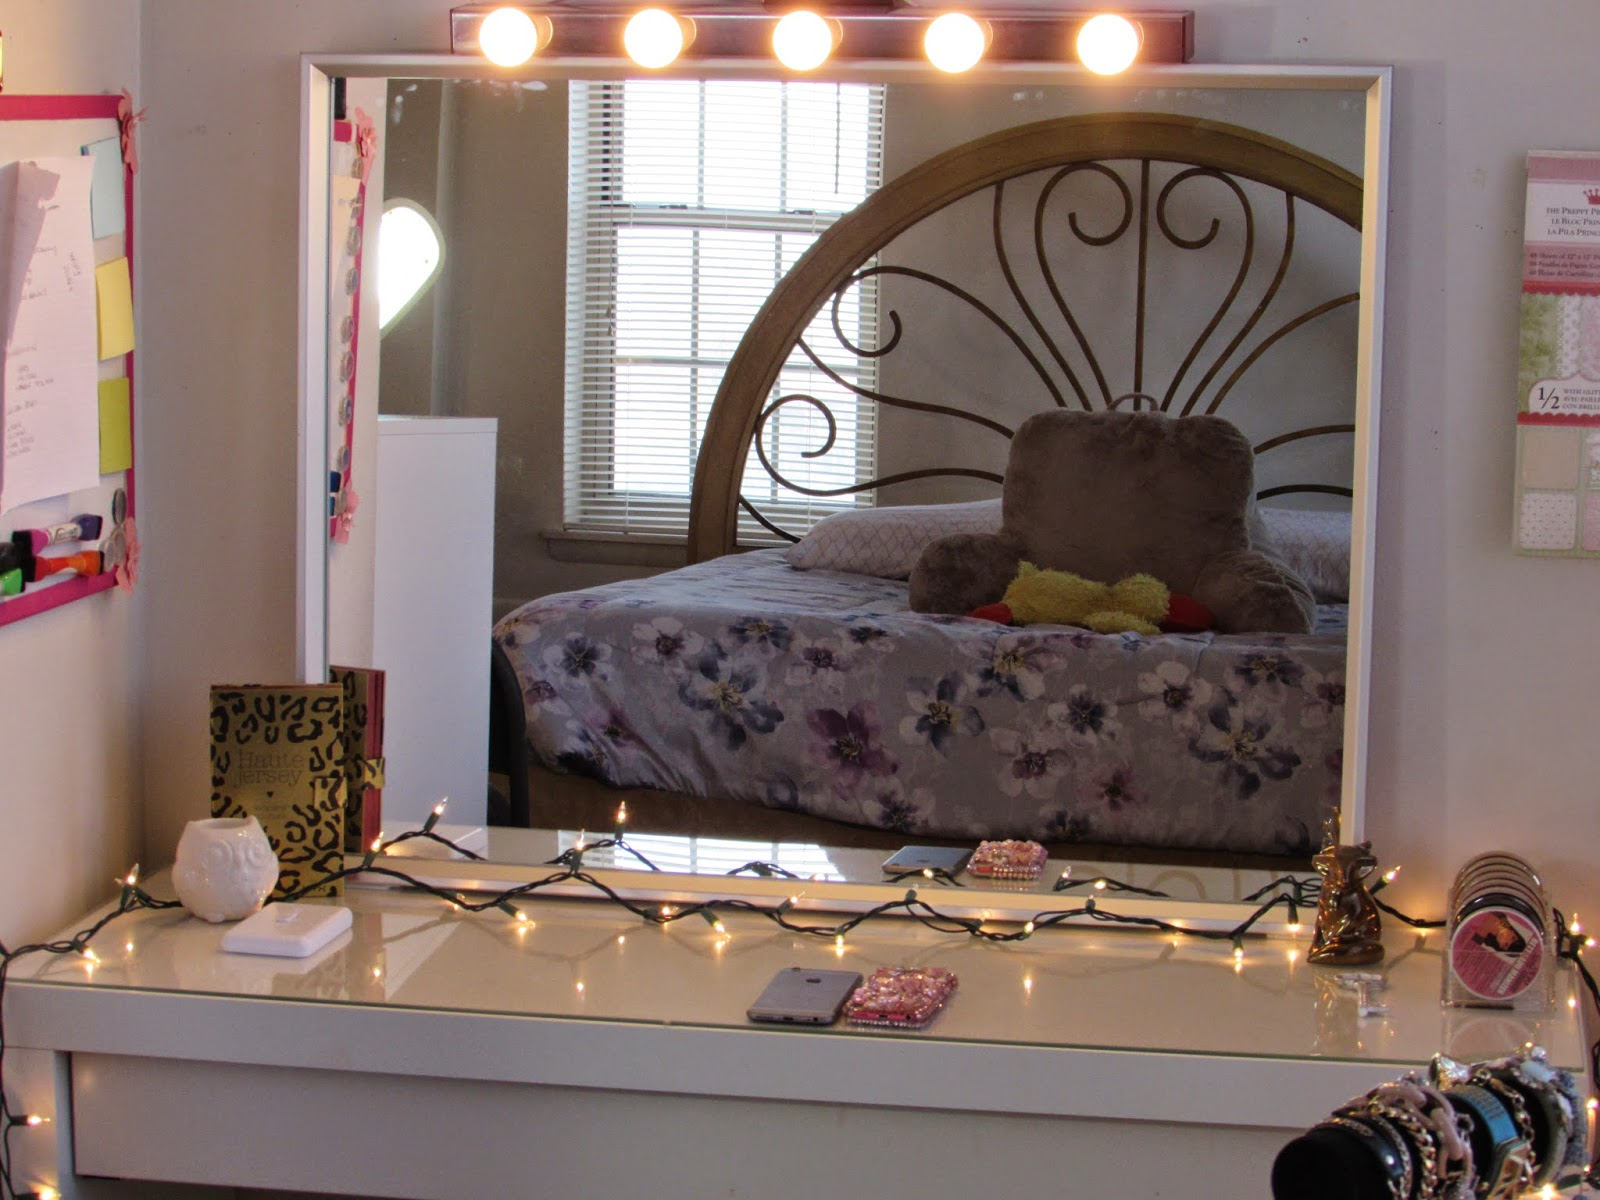 diy hollywood vanity light mirror diy room decor easy cheap no drilling cheap vanity lighting